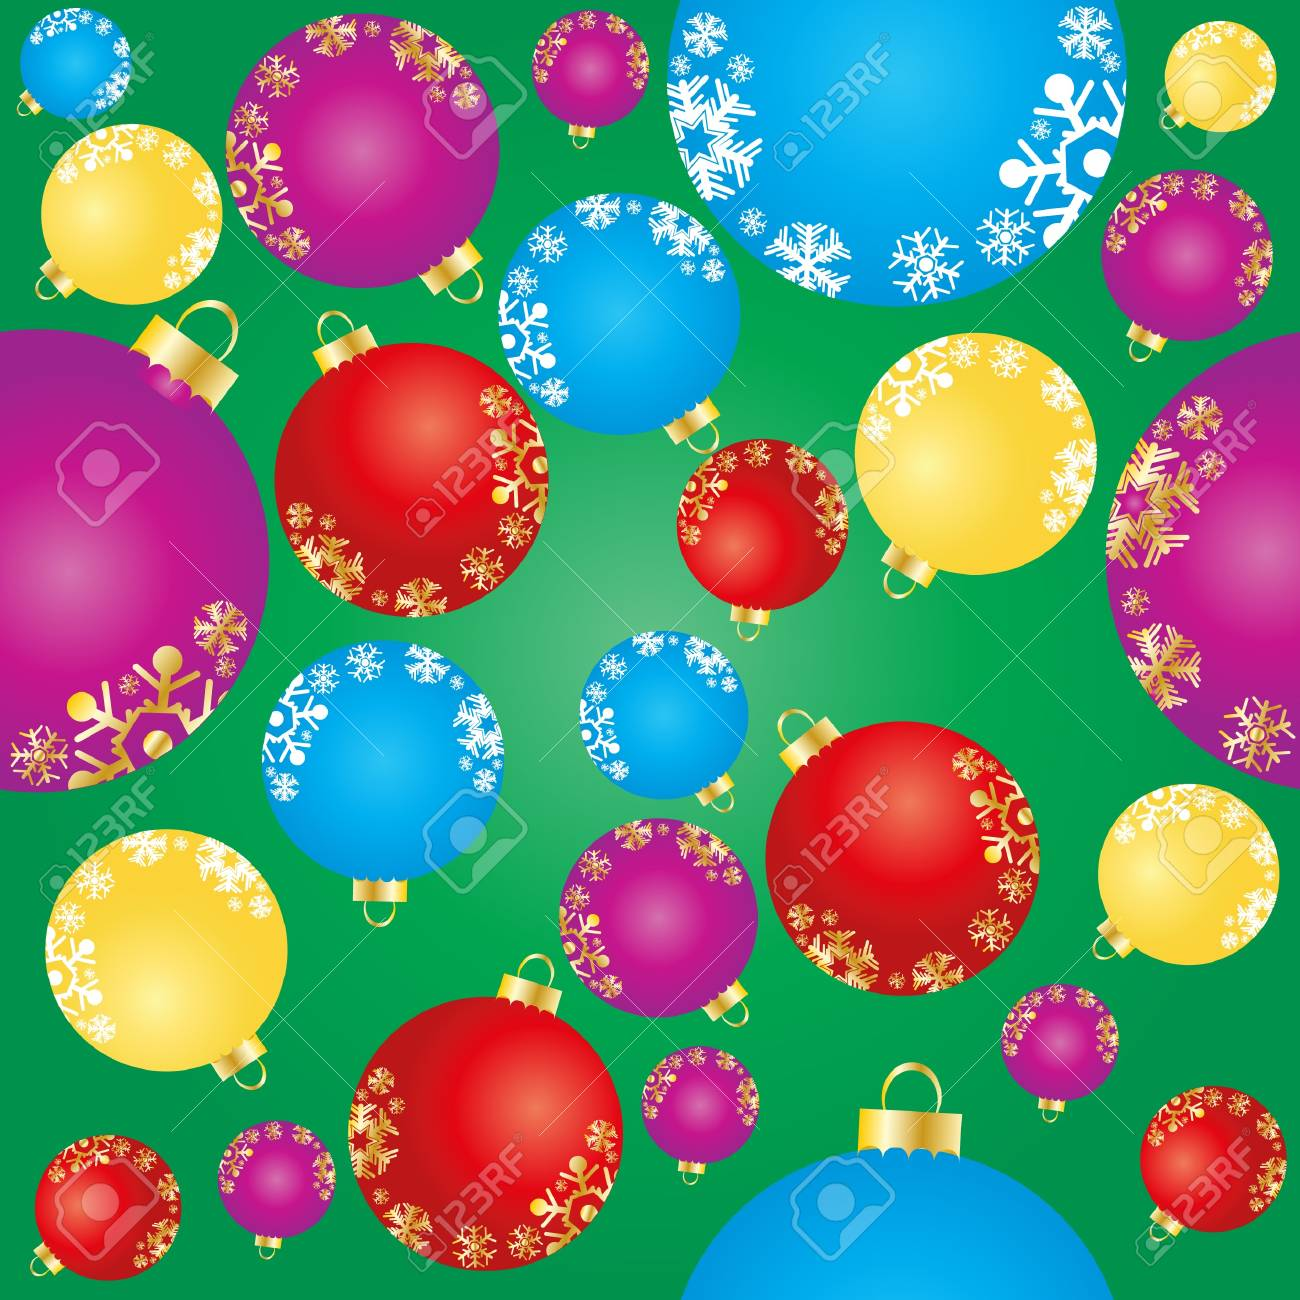 Vector illustration of green background with Christmas elements Stock Vector - 9428521